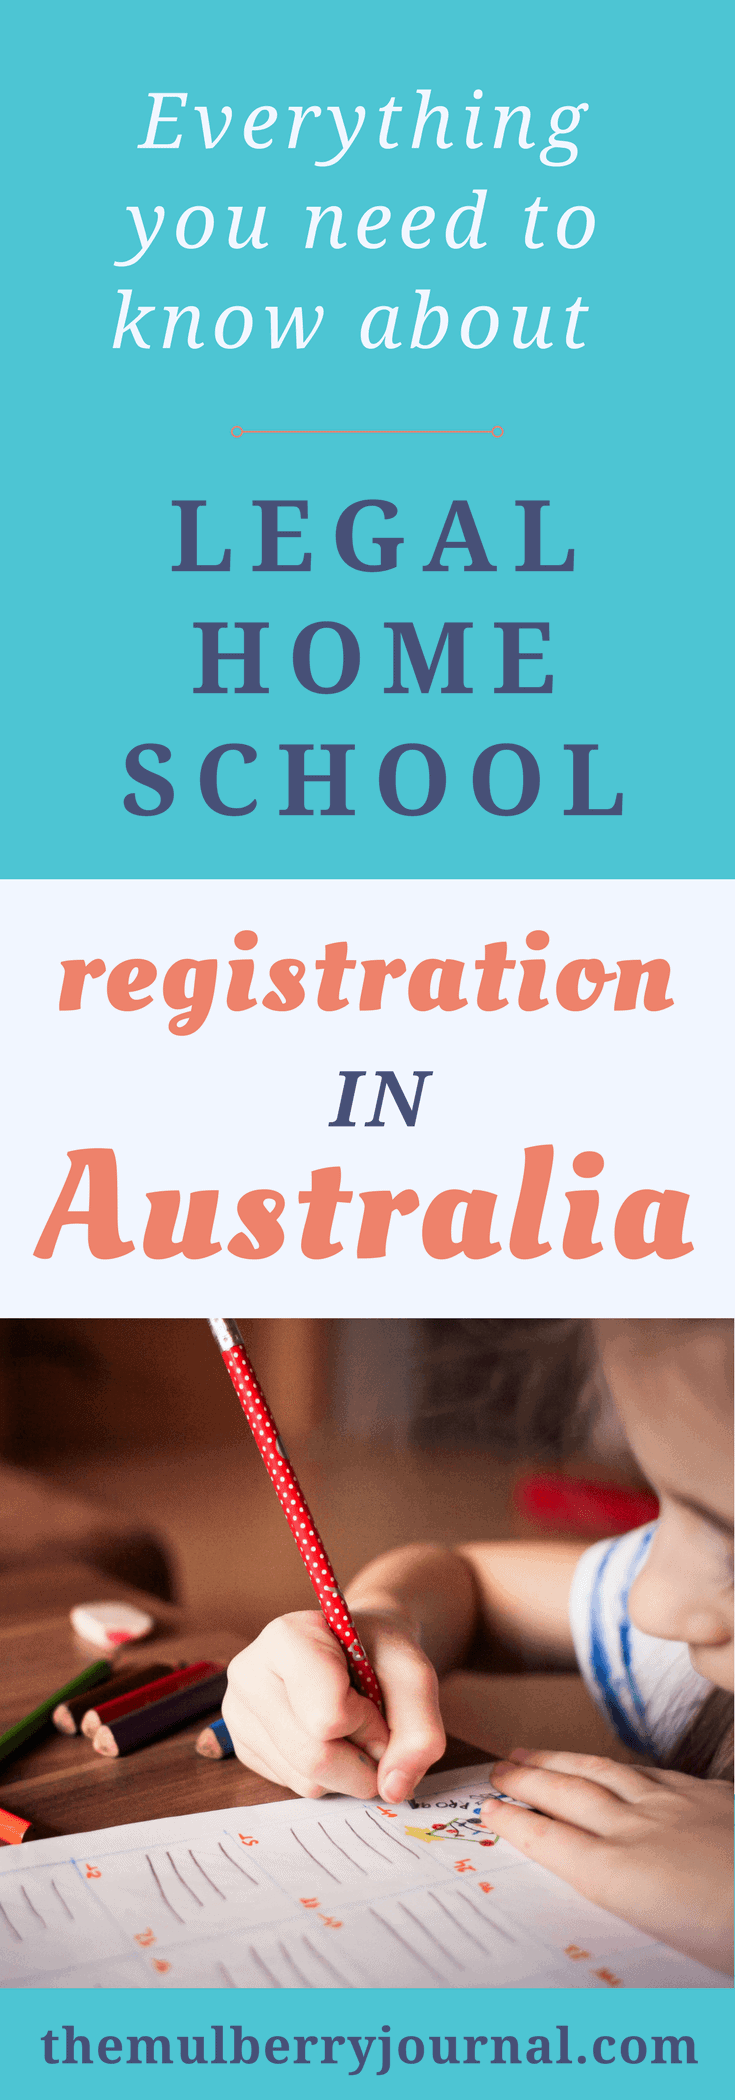 Homeschool Registration in Australia: What You Need to Know